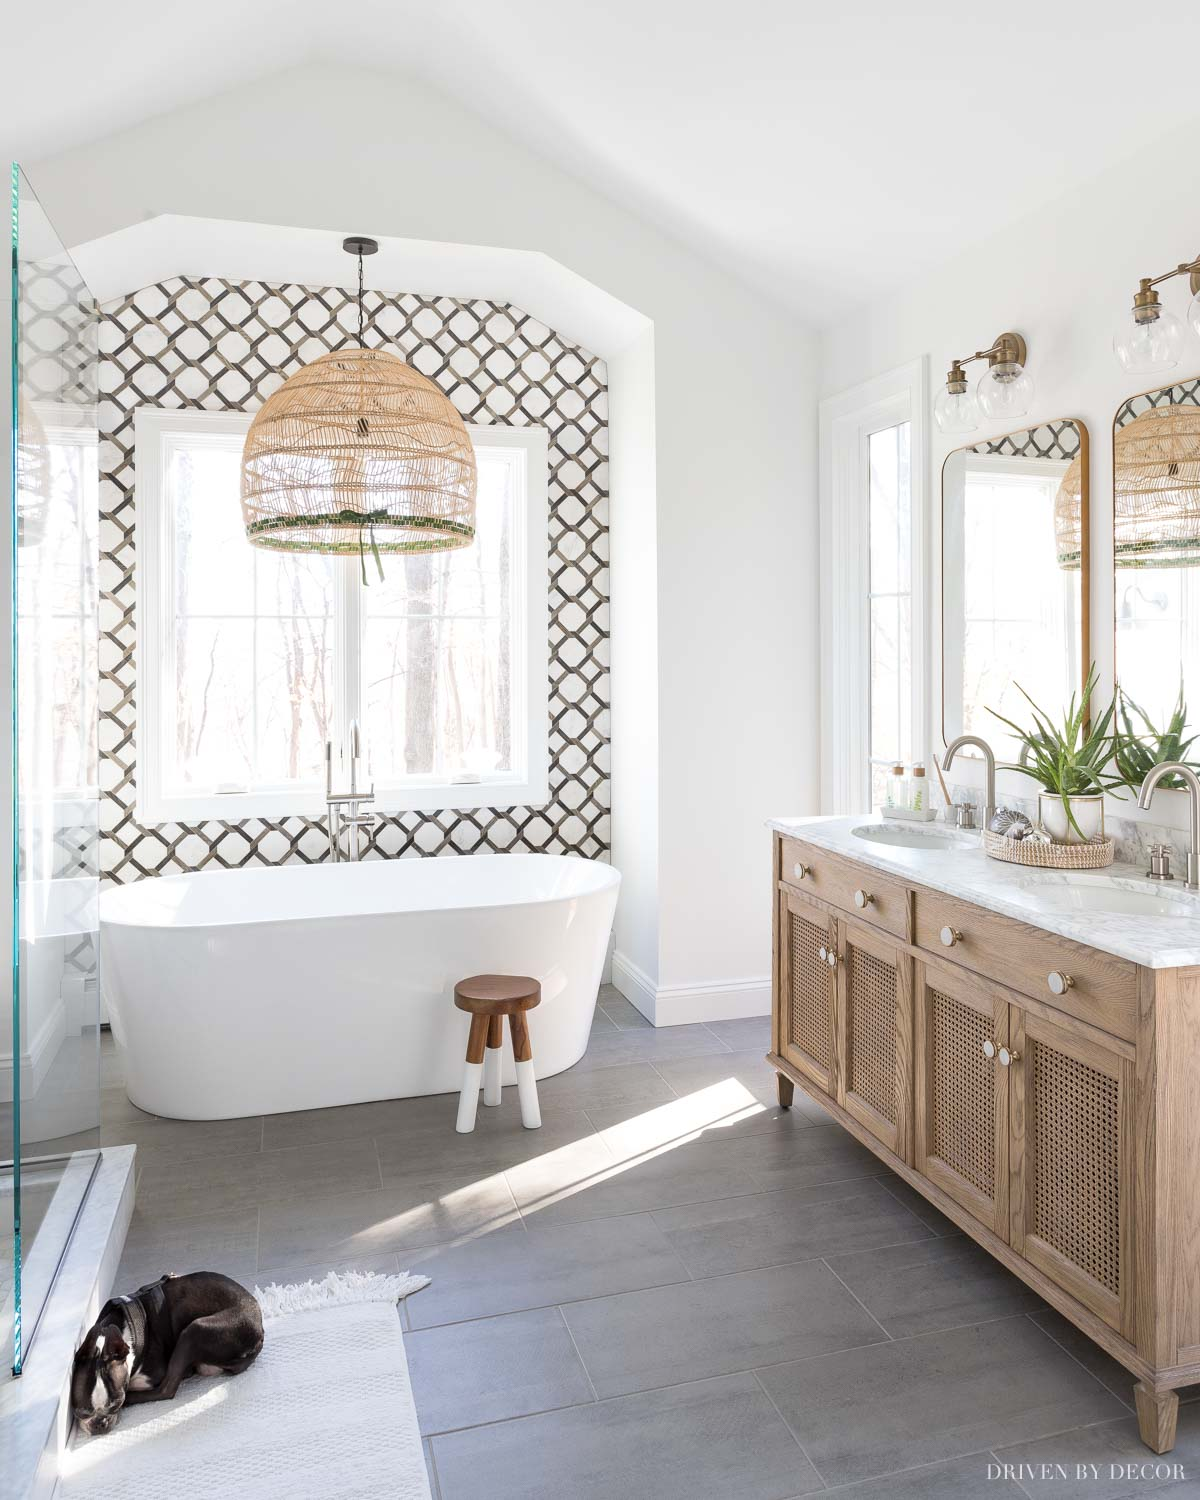 Love the pendant over the bathtub! Great master bathroom remodel ideas in this post!